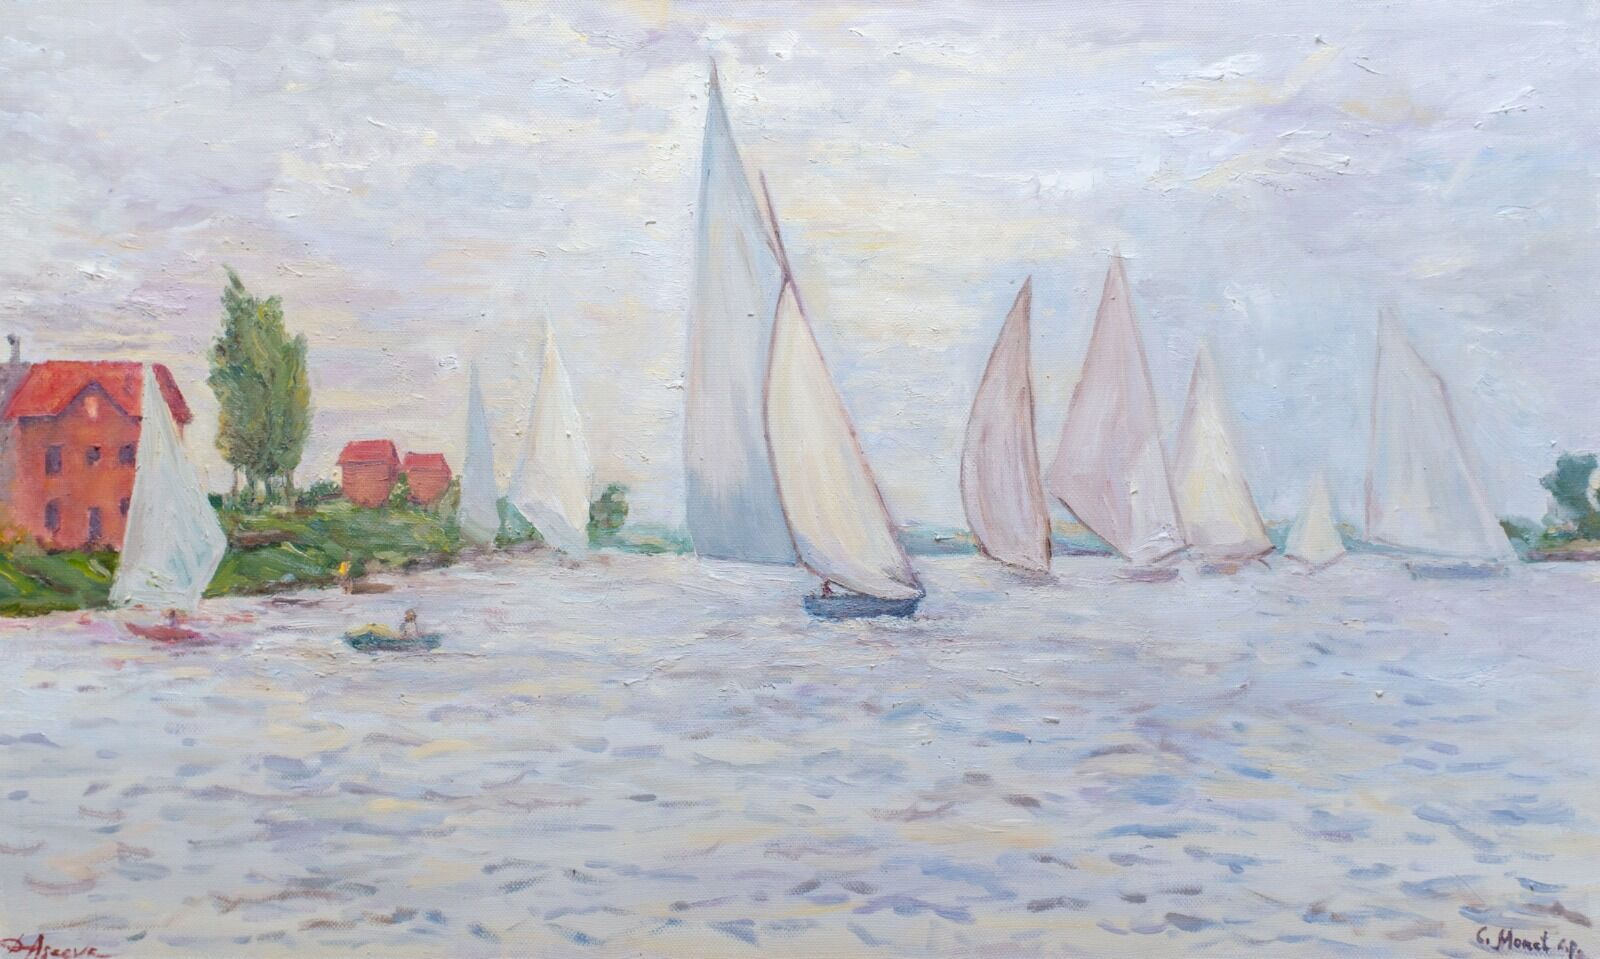 Inspired by C.Monet's Regatta at Argenteuil